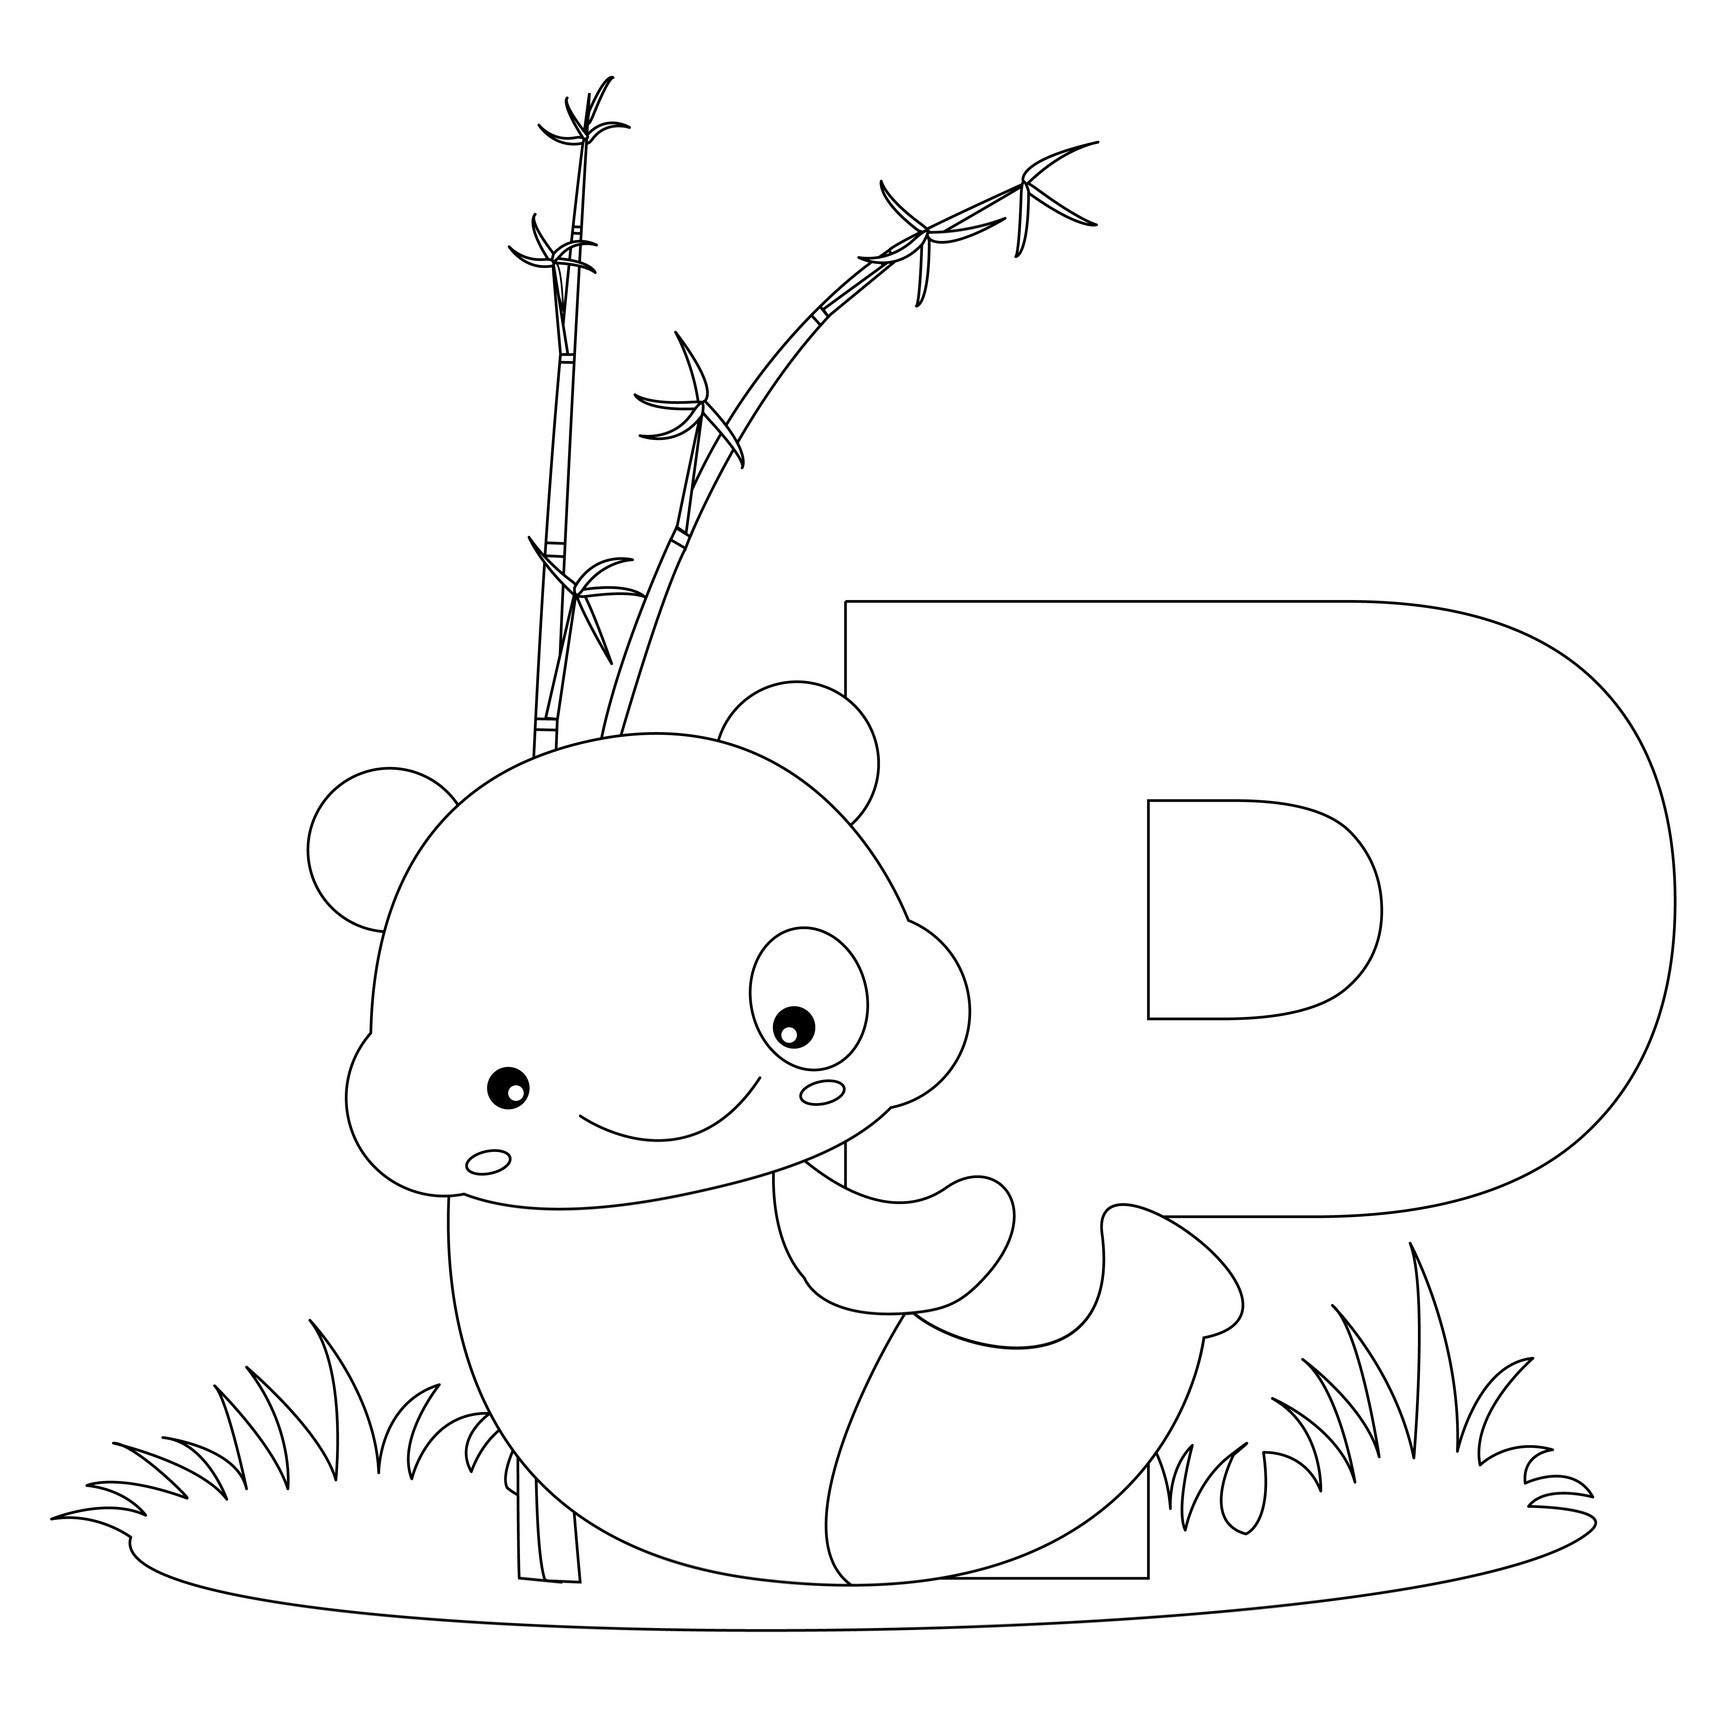 letter p coloring pages free printable alphabet coloring pages for kids best coloring letter p pages